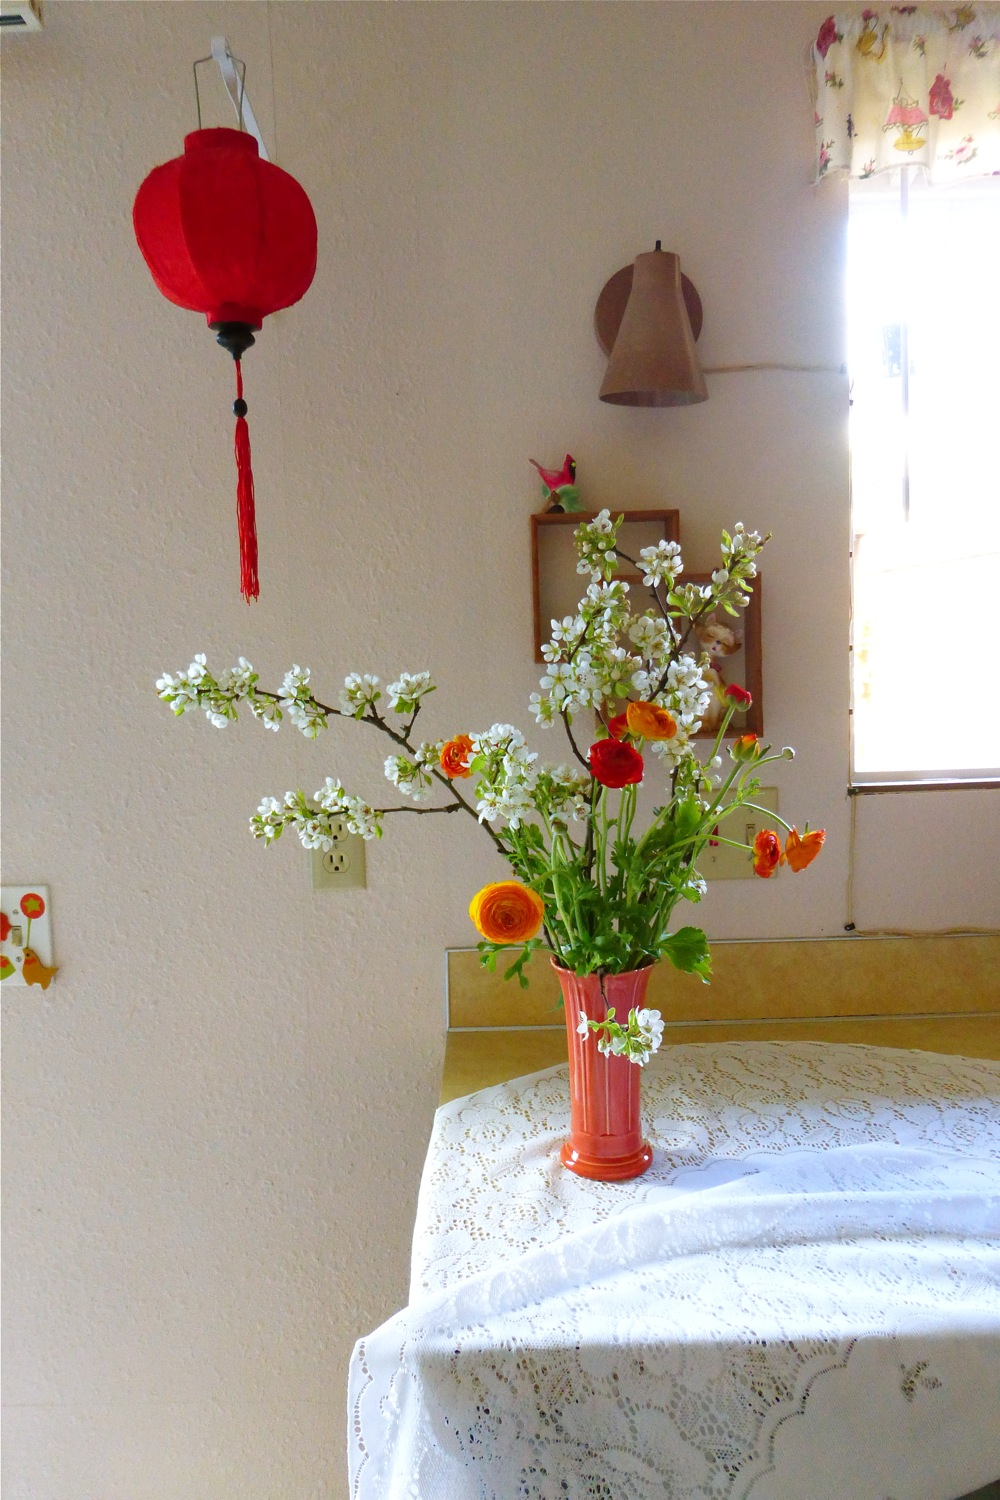 Spring floral arrangement, spring florals, pear blossoms, ranunculus, styling, Oriental lantern, red Oriental lantern, made in Japan, Japanese salt or pepper shaker, Japanese jazz cat, Japanese jazz kitty, vintage made in Japan, vintage Japanese ceramics, vintage Japanese wooden wall shelf